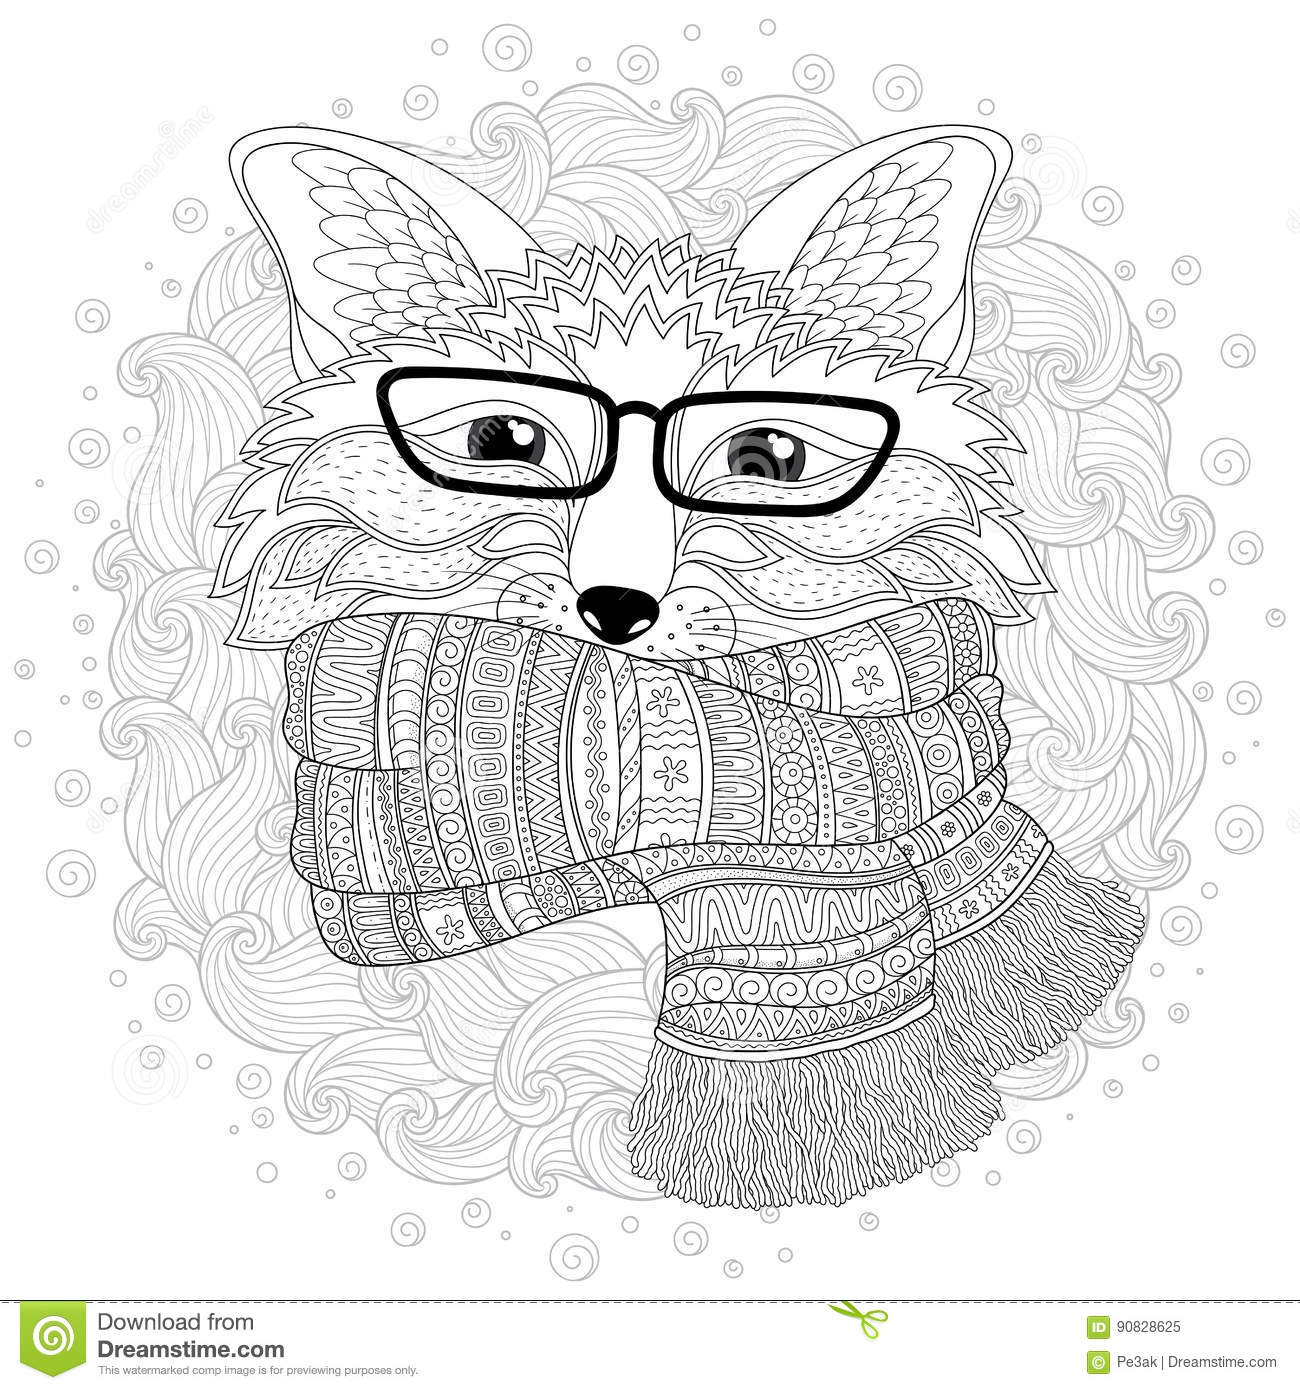 fox wearing scarf coloring page black white hand drawn doodle animal ethnic patterned vector illustration african indian